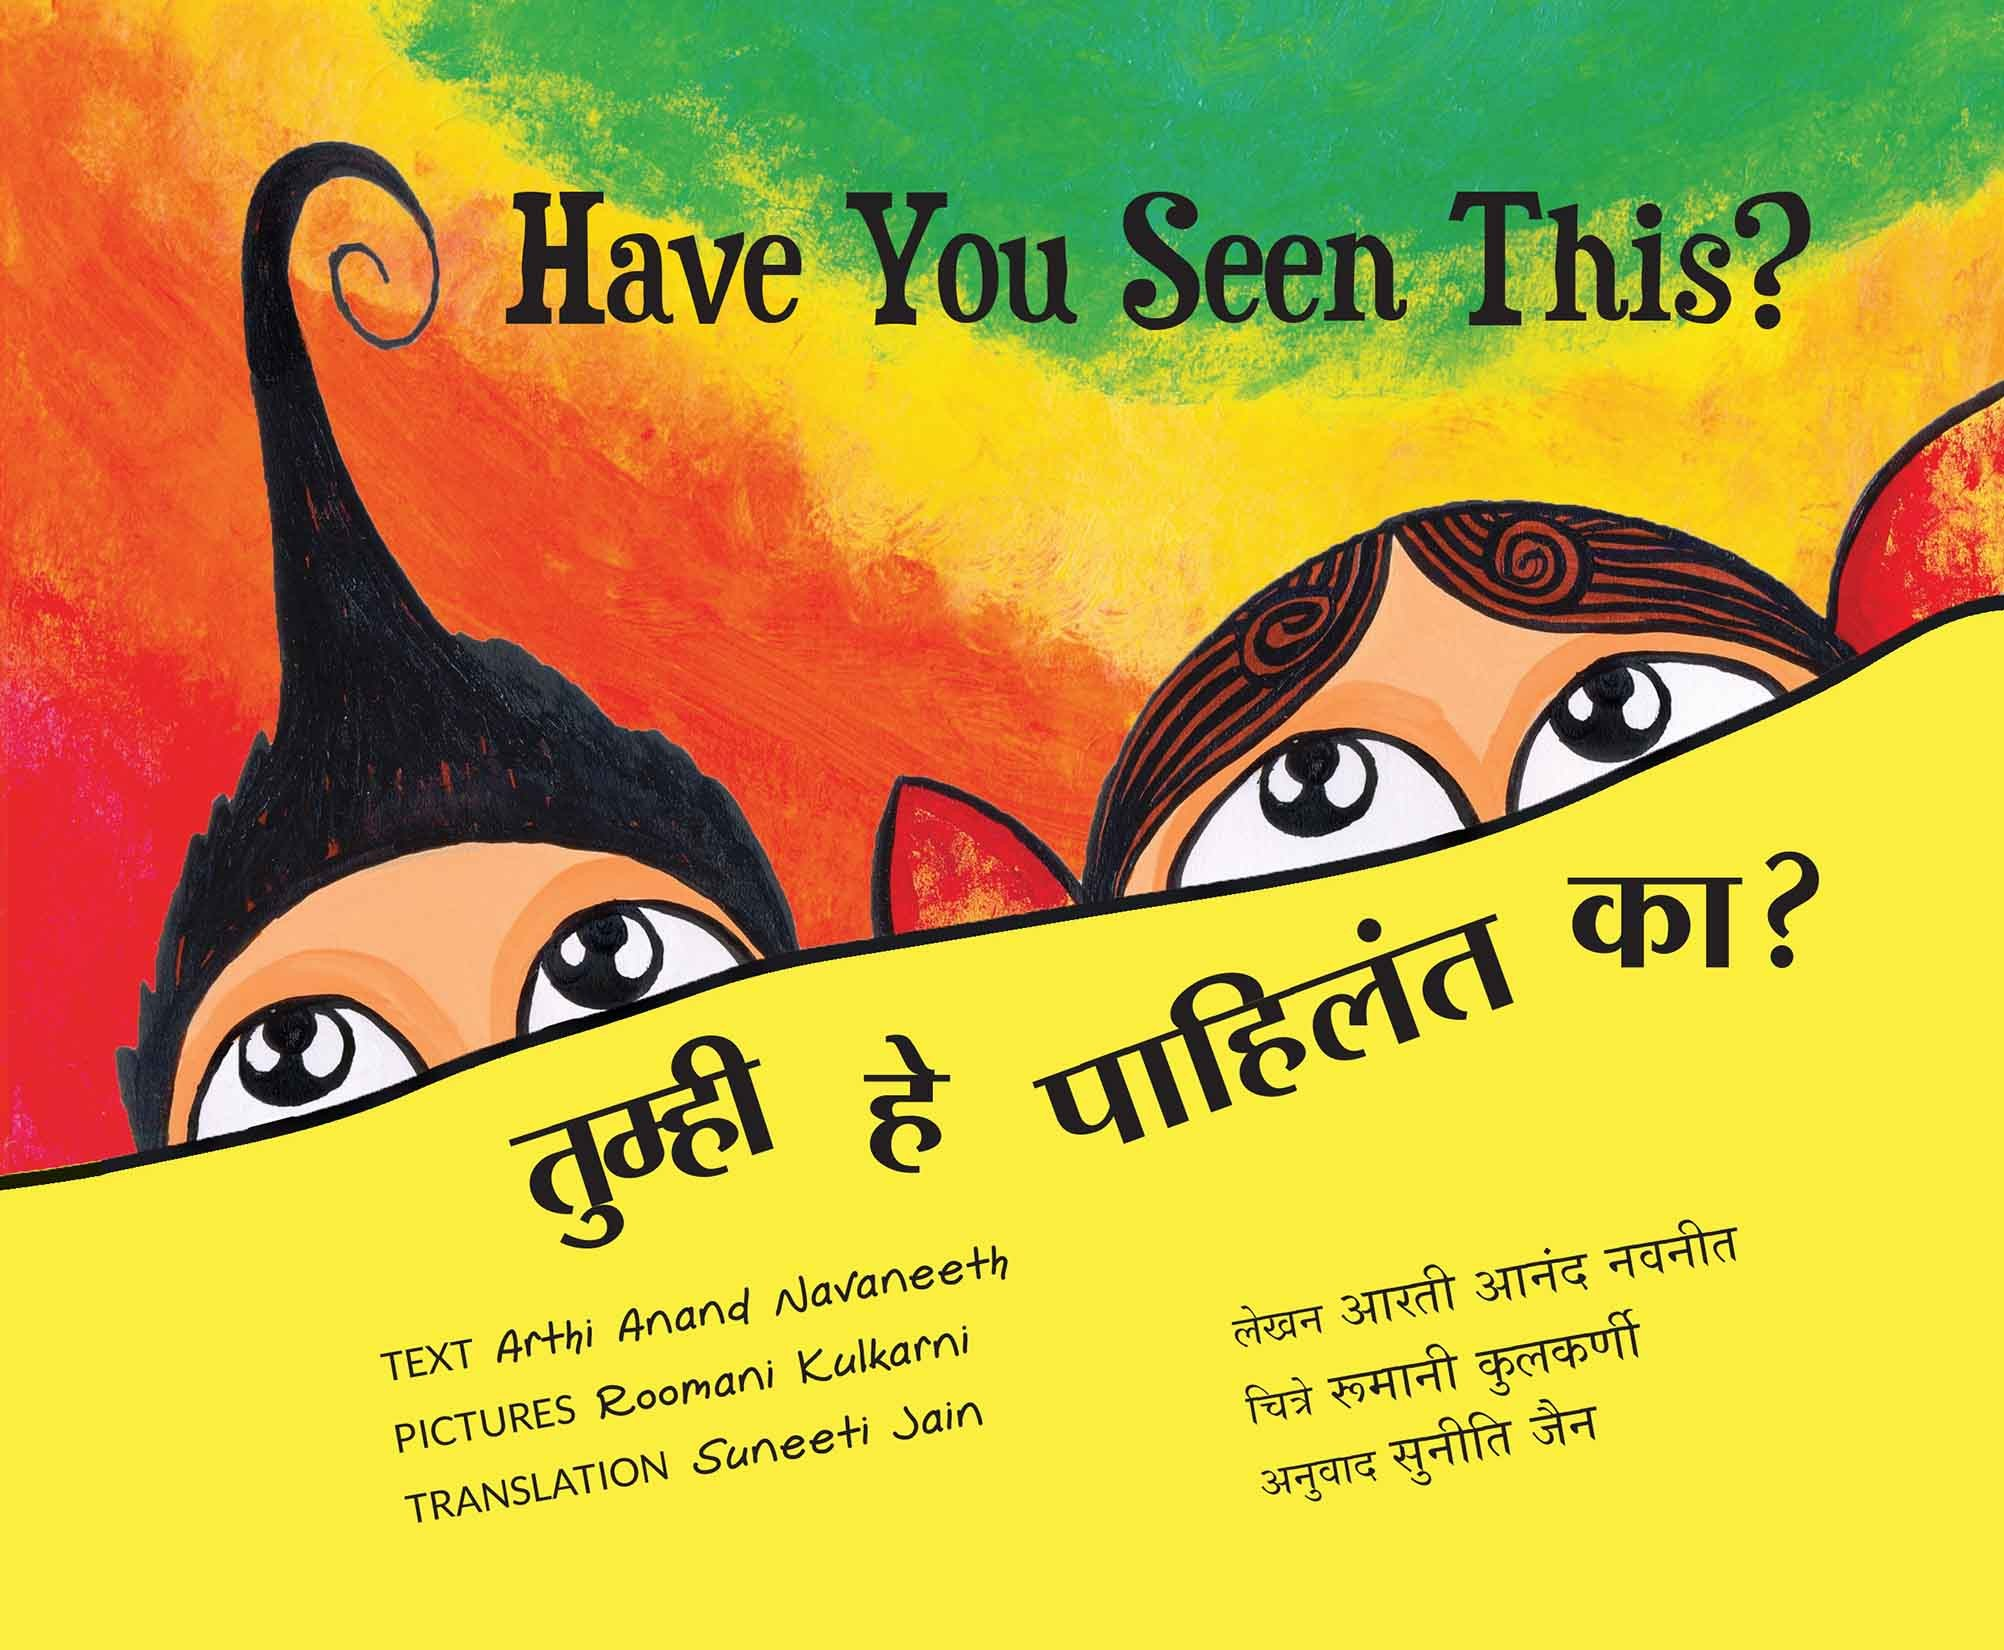 Have You Seen This?/Tumhi Hai Pahilat Ka? (English-Marathi)